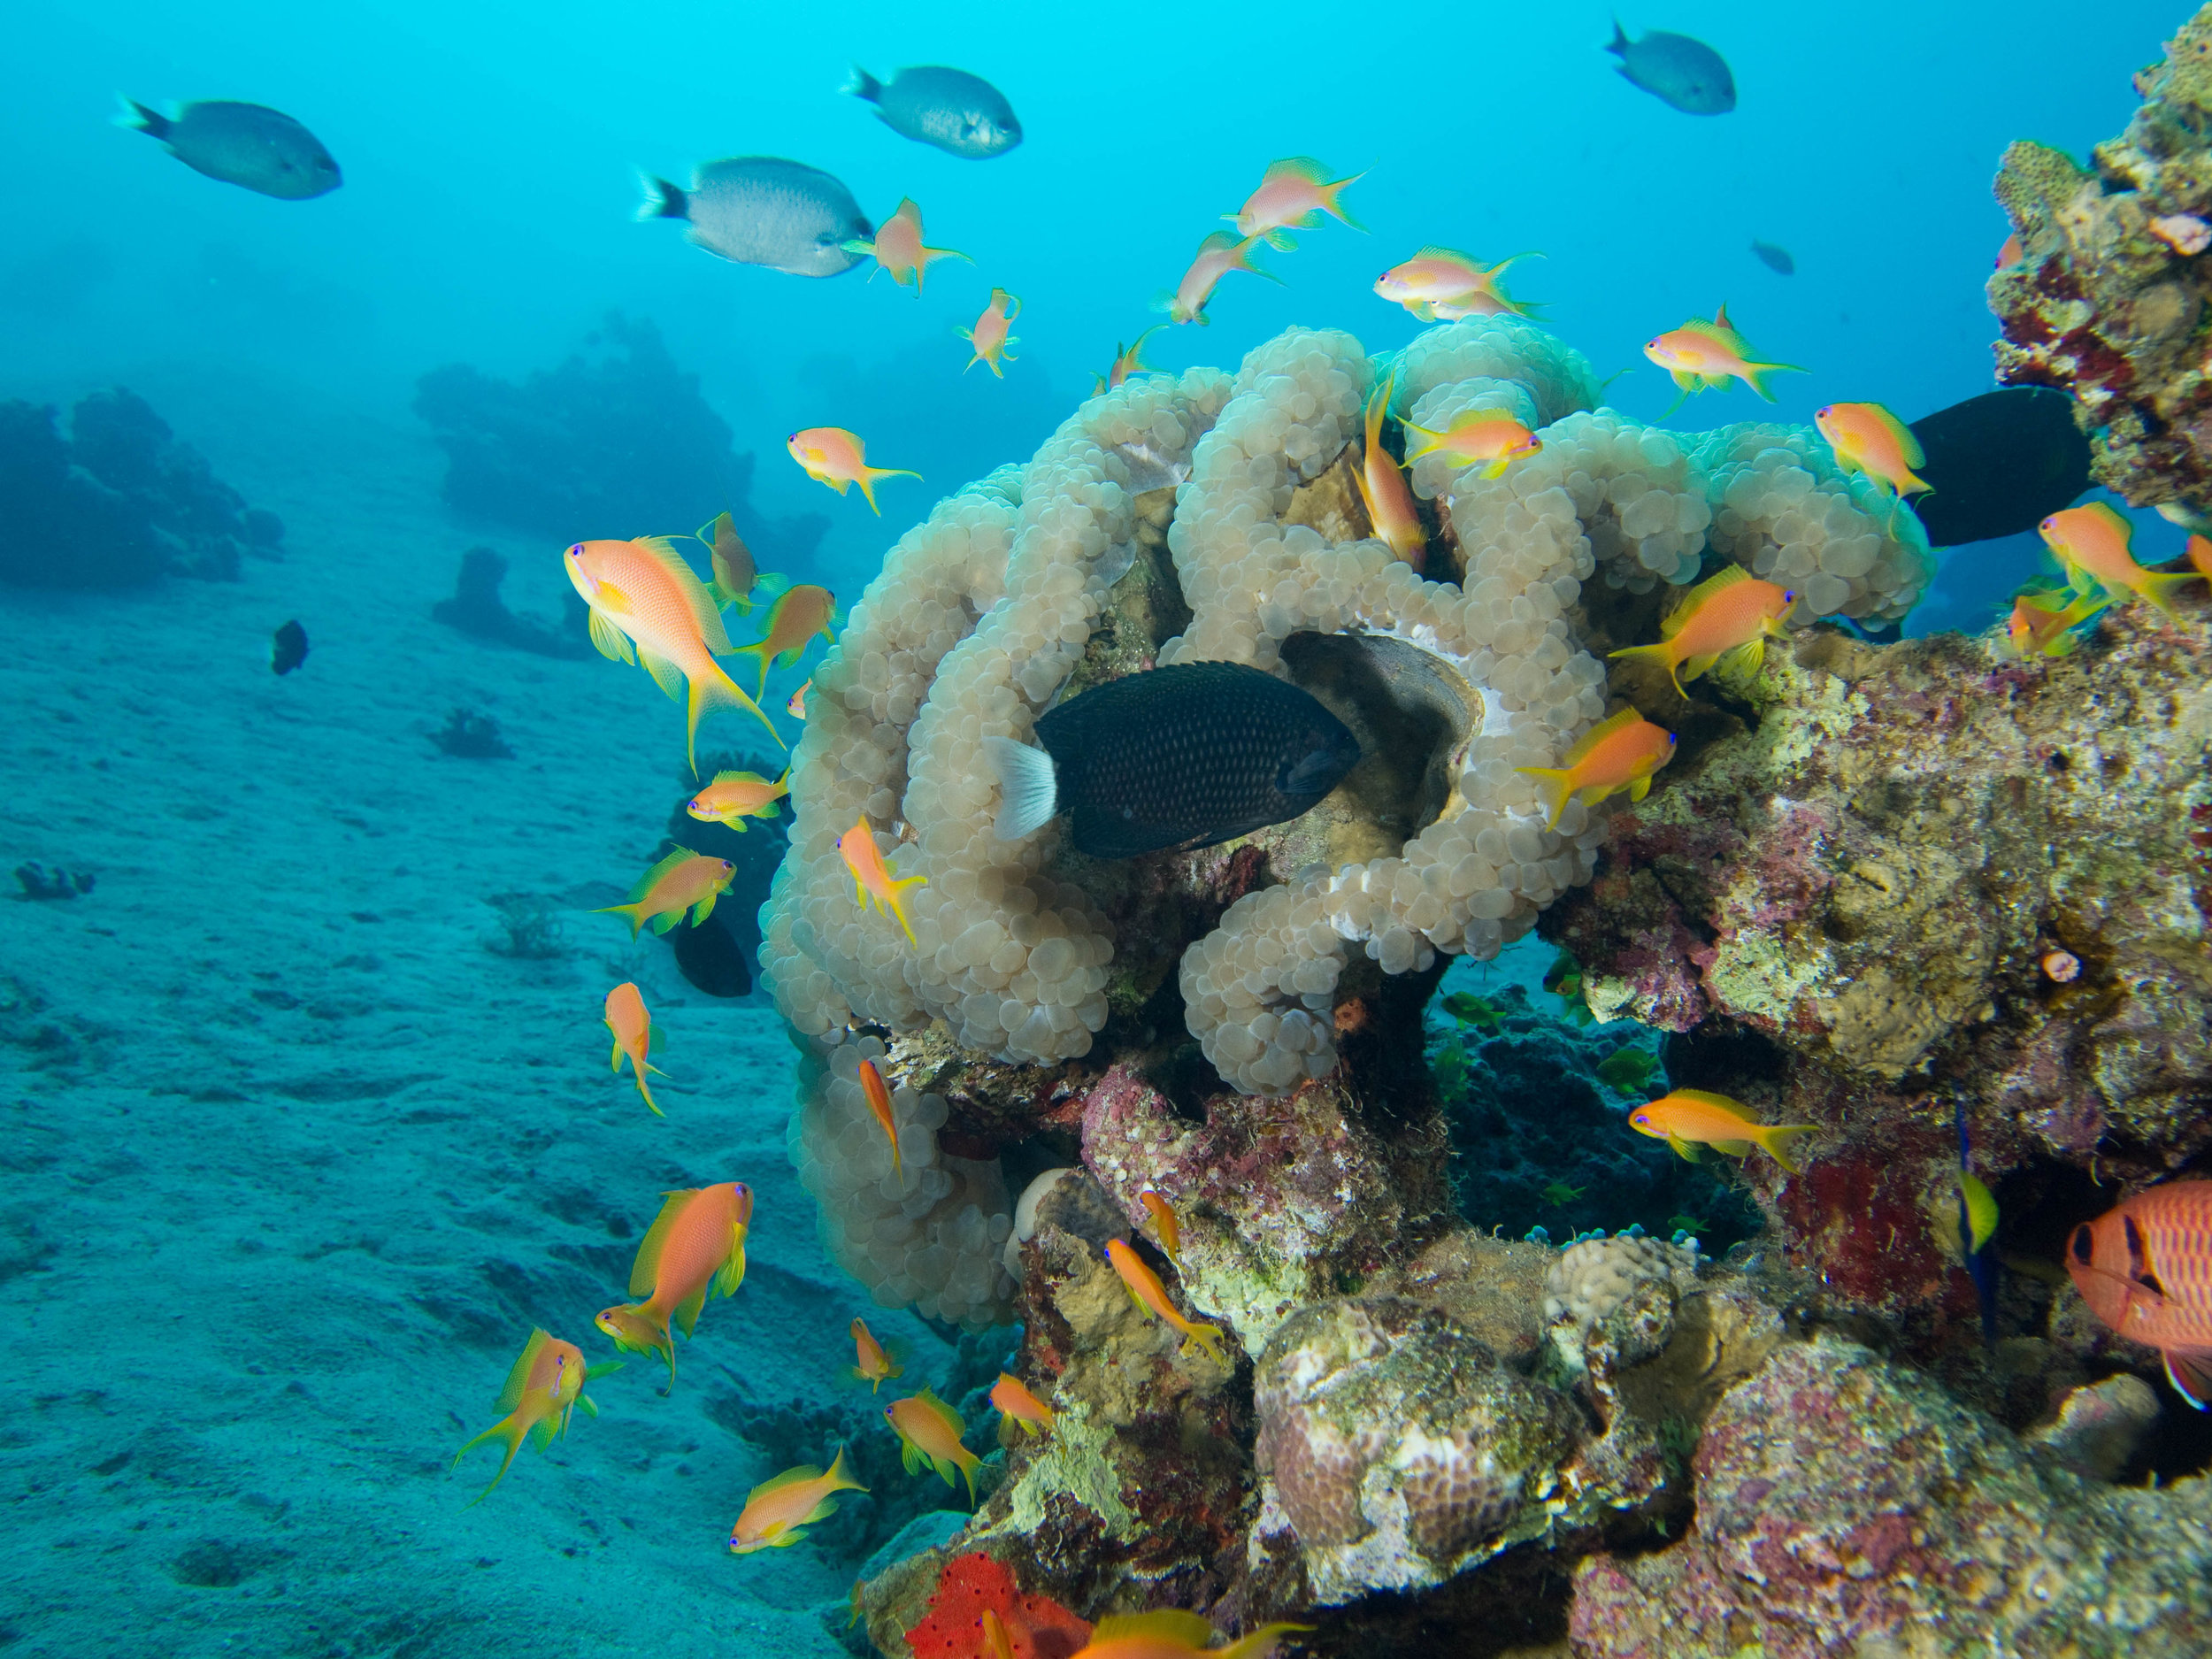 Aquatic life in the Red Sea near Aqaba. Photo taken by Joi Ito, distributed under  CC BY 2.0  license.